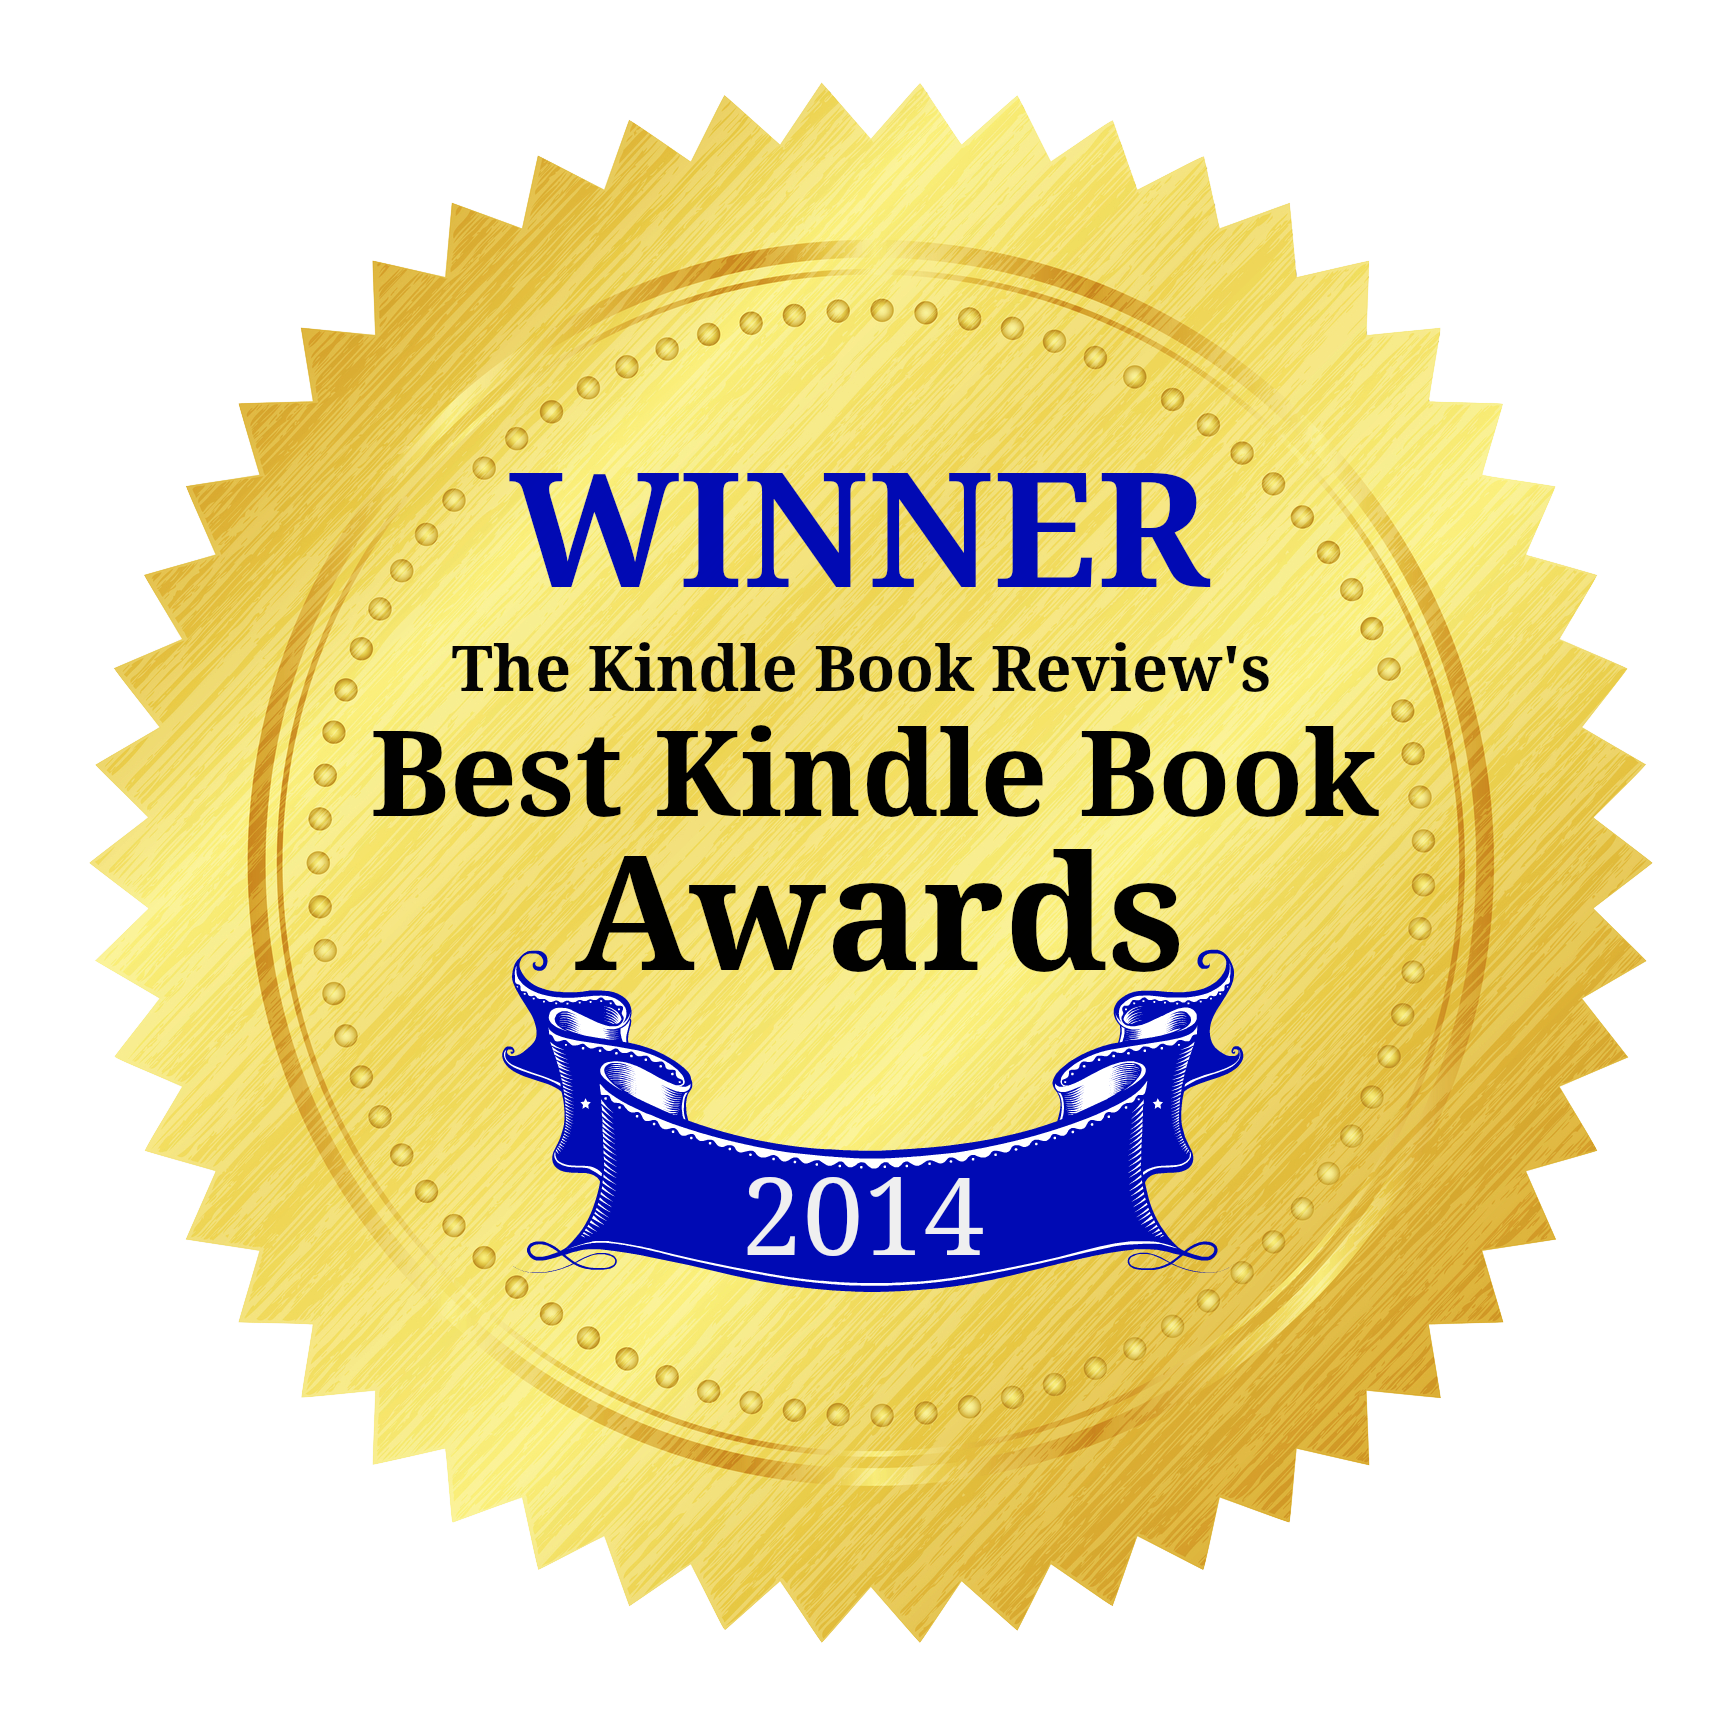 2014 kindle book awards the kindle book review